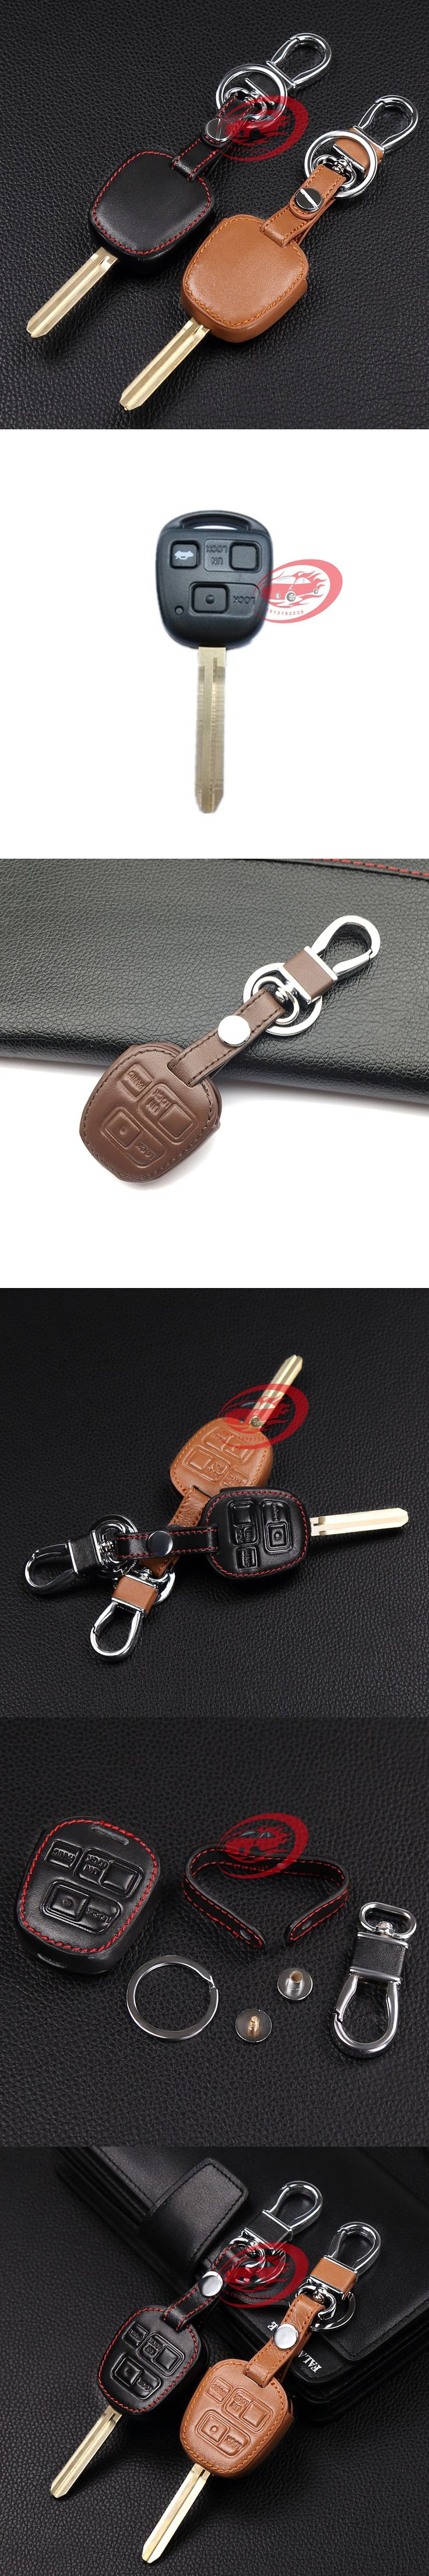 Hot sale classic design 100% genuine leather car key cover for Toyota Tarago RAV4 Corolla 3 Buttons remote control starline a91